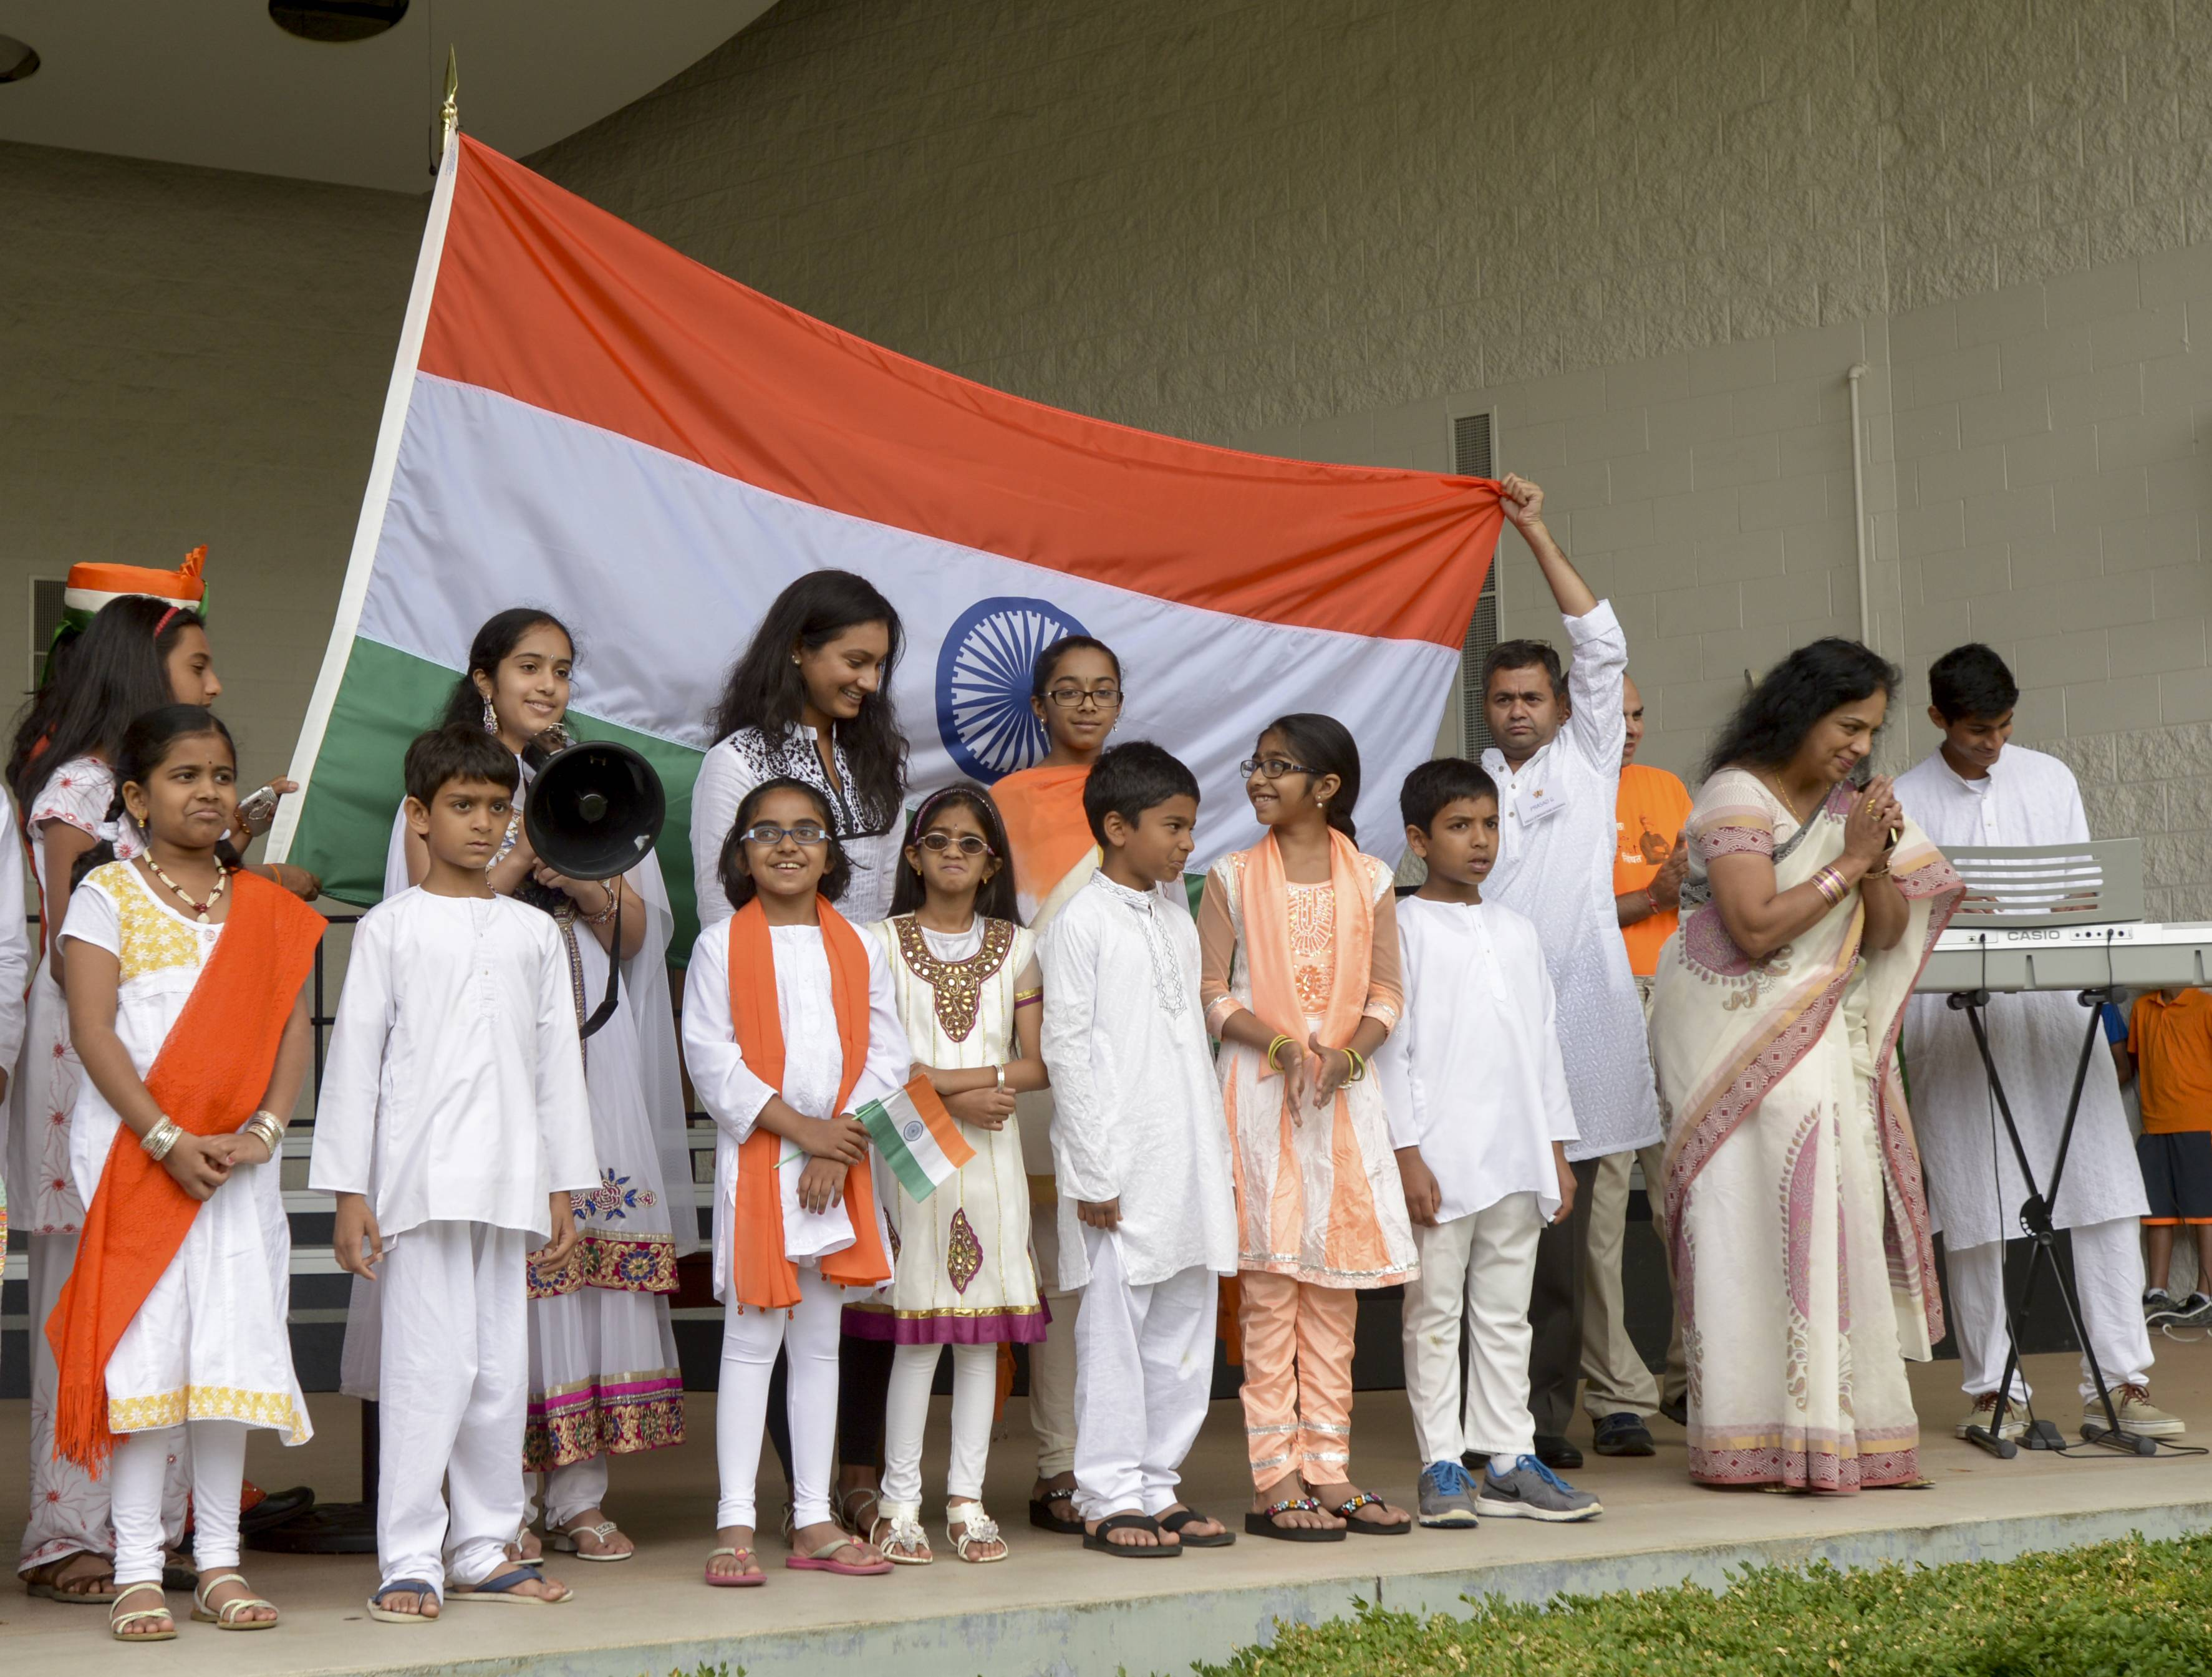 Members of the suburban Indian Community sang the Indian national anthem on Sunday to kick off the Indian Independence celebration at Central Park in Naperville.